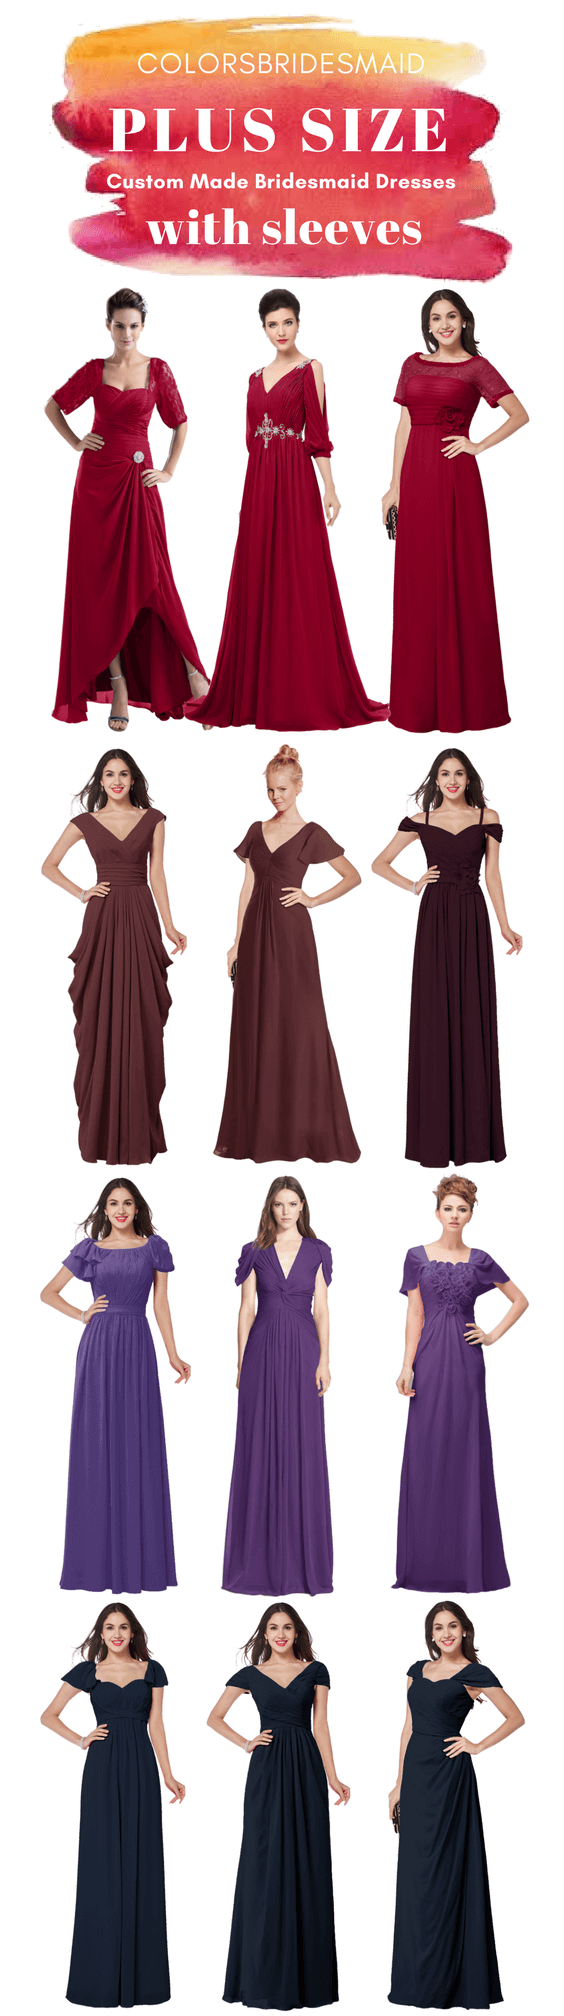 22427c5408a Curvy Plus Size Bridesmaid Dresses With Sleeves That Will Flatter ...